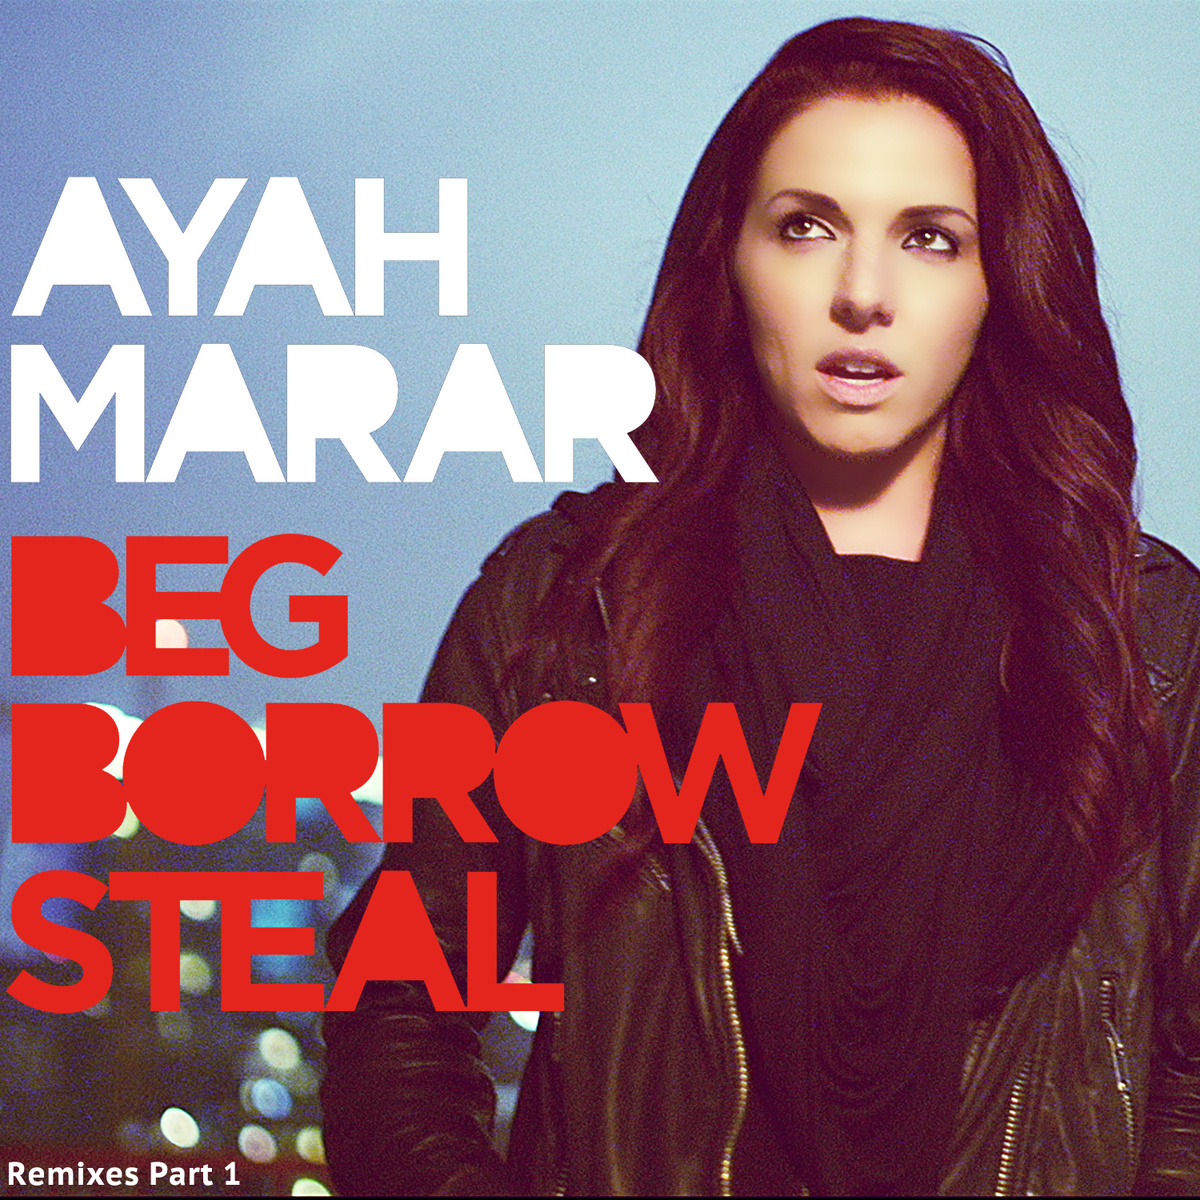 Ayah Marar - Beg Borrow Steal (Remixes Part 1)